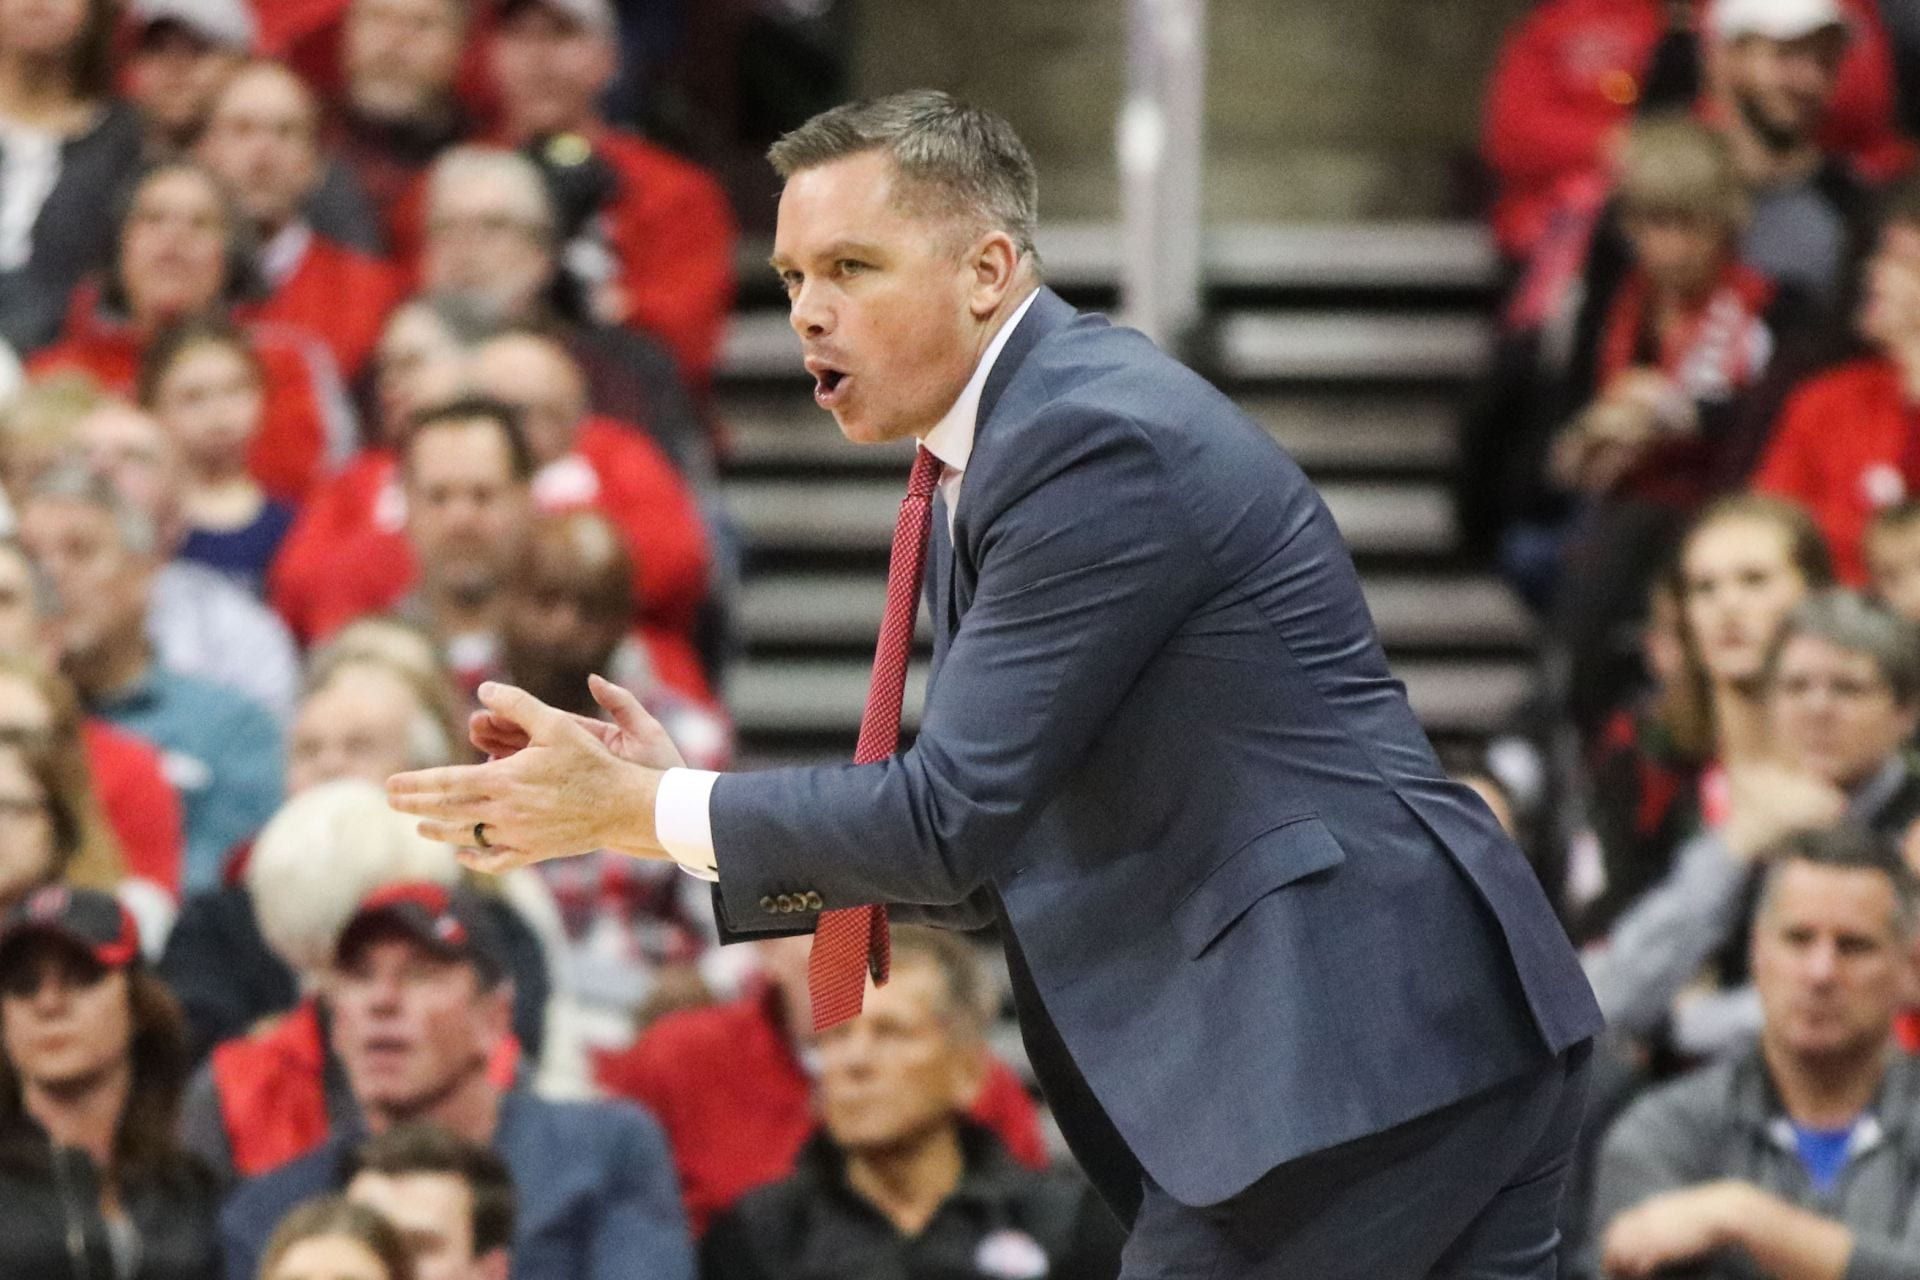 Men's Basketball: Ohio State takes four-game losing streak into game against Purdue